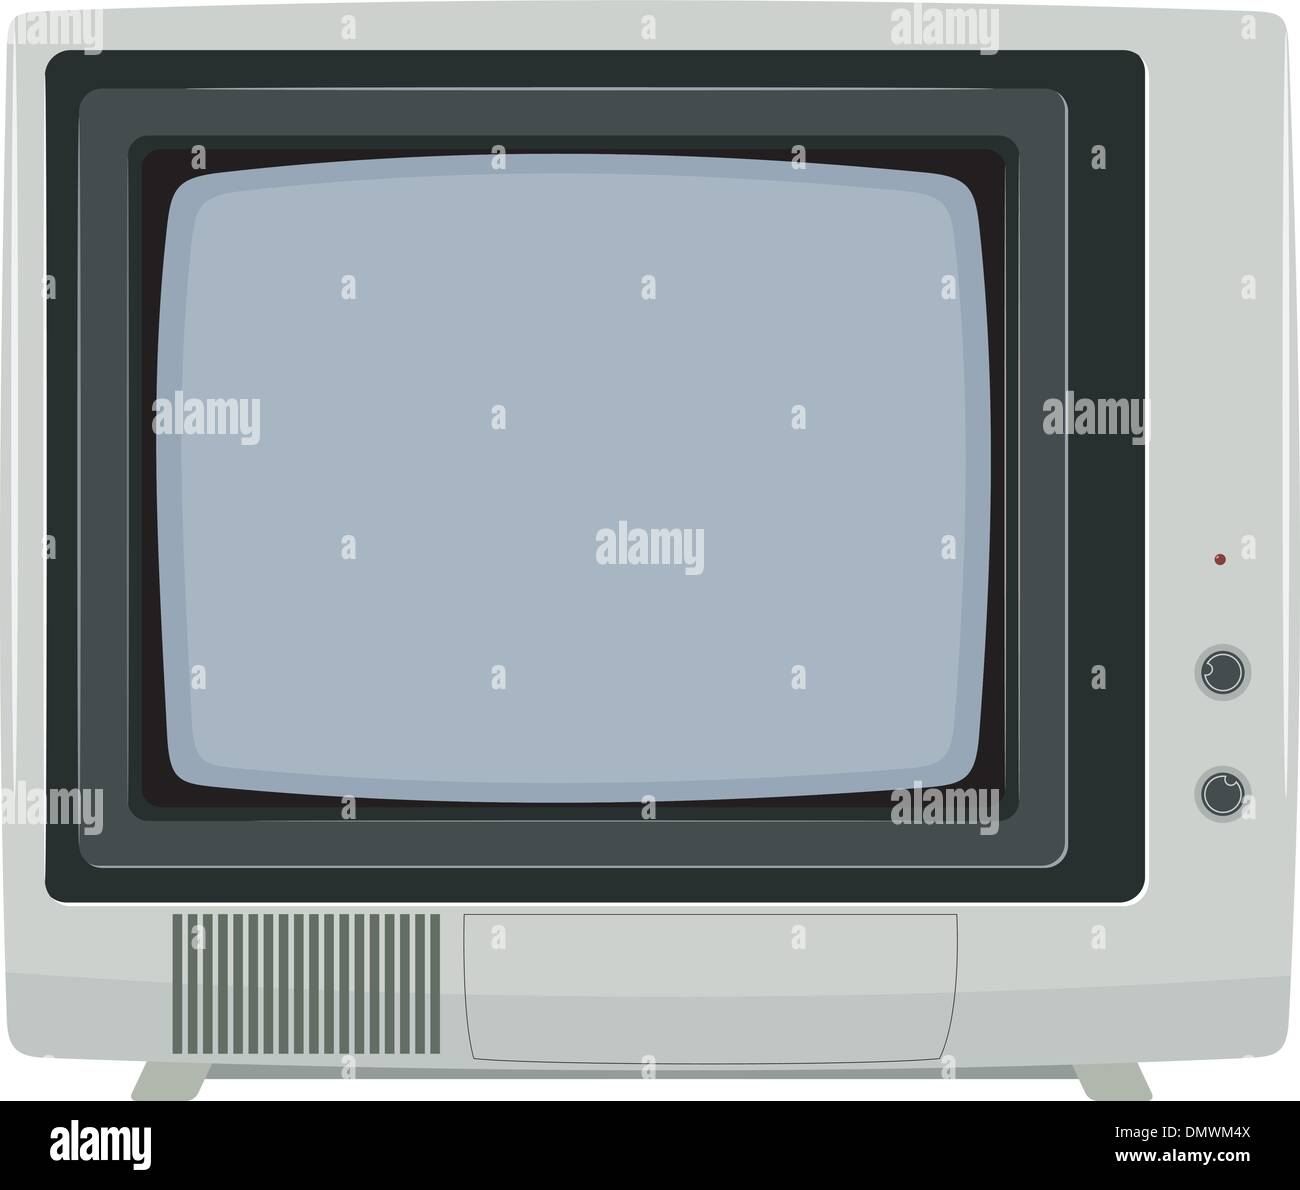 Vector illustration of an old TV set with plastic housing - Stock Vector